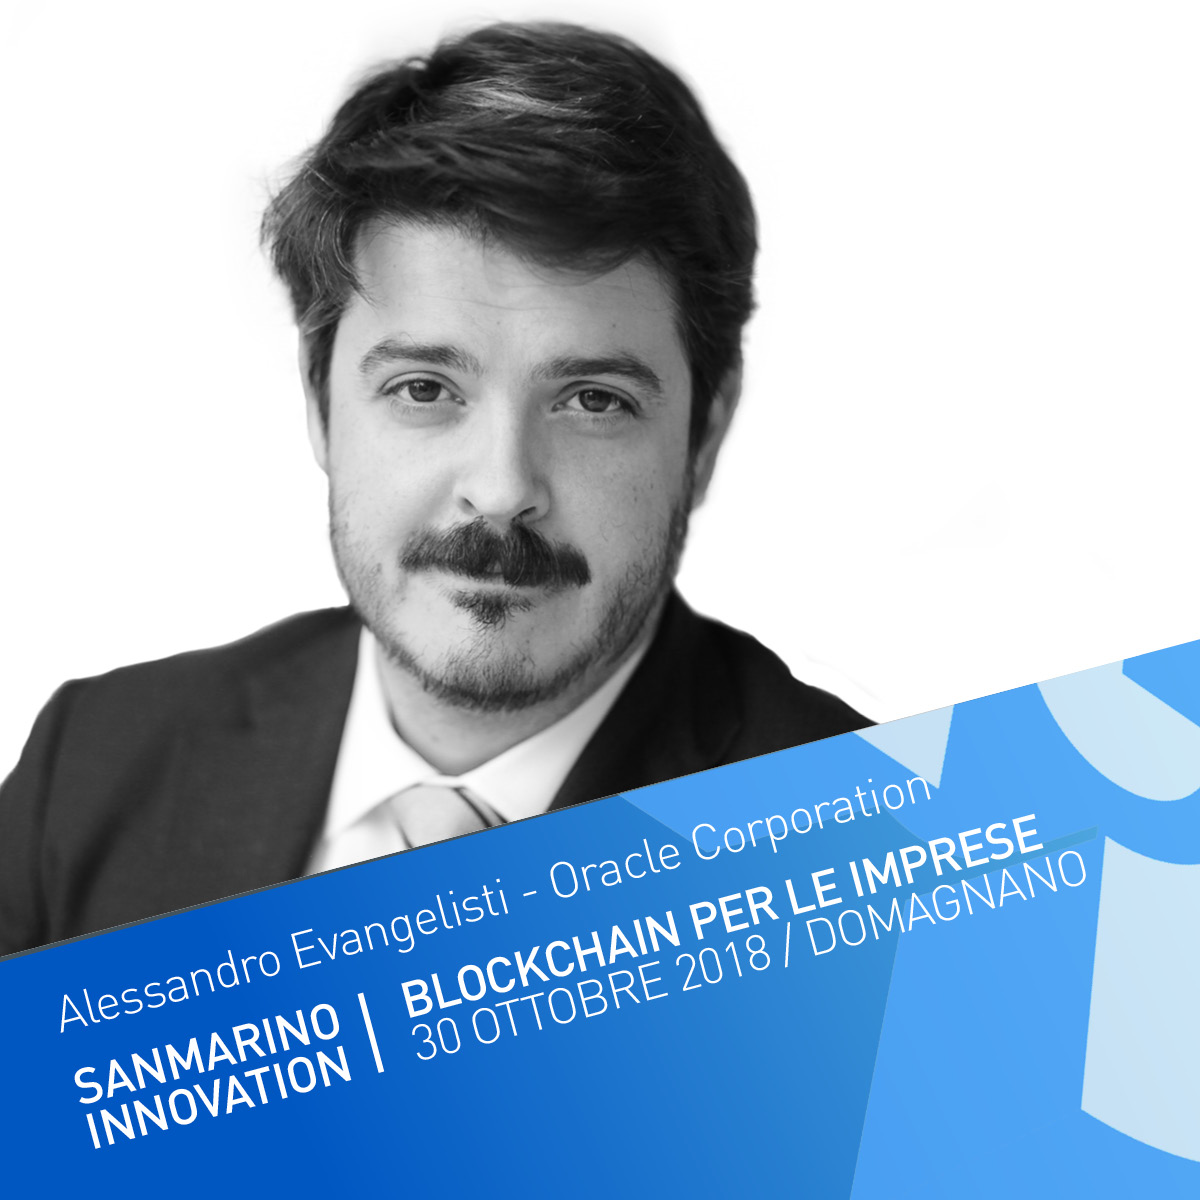 Blockchain: I vantaggi della deistituzionalizzazione delle relazioni tra soggetti economici - Alessandro Evangelisti è il Finance & Supply Chain Cloud Evangelist per Oracle West Europe dove aiuta le imprese a delineare la loro Digital Agenda.